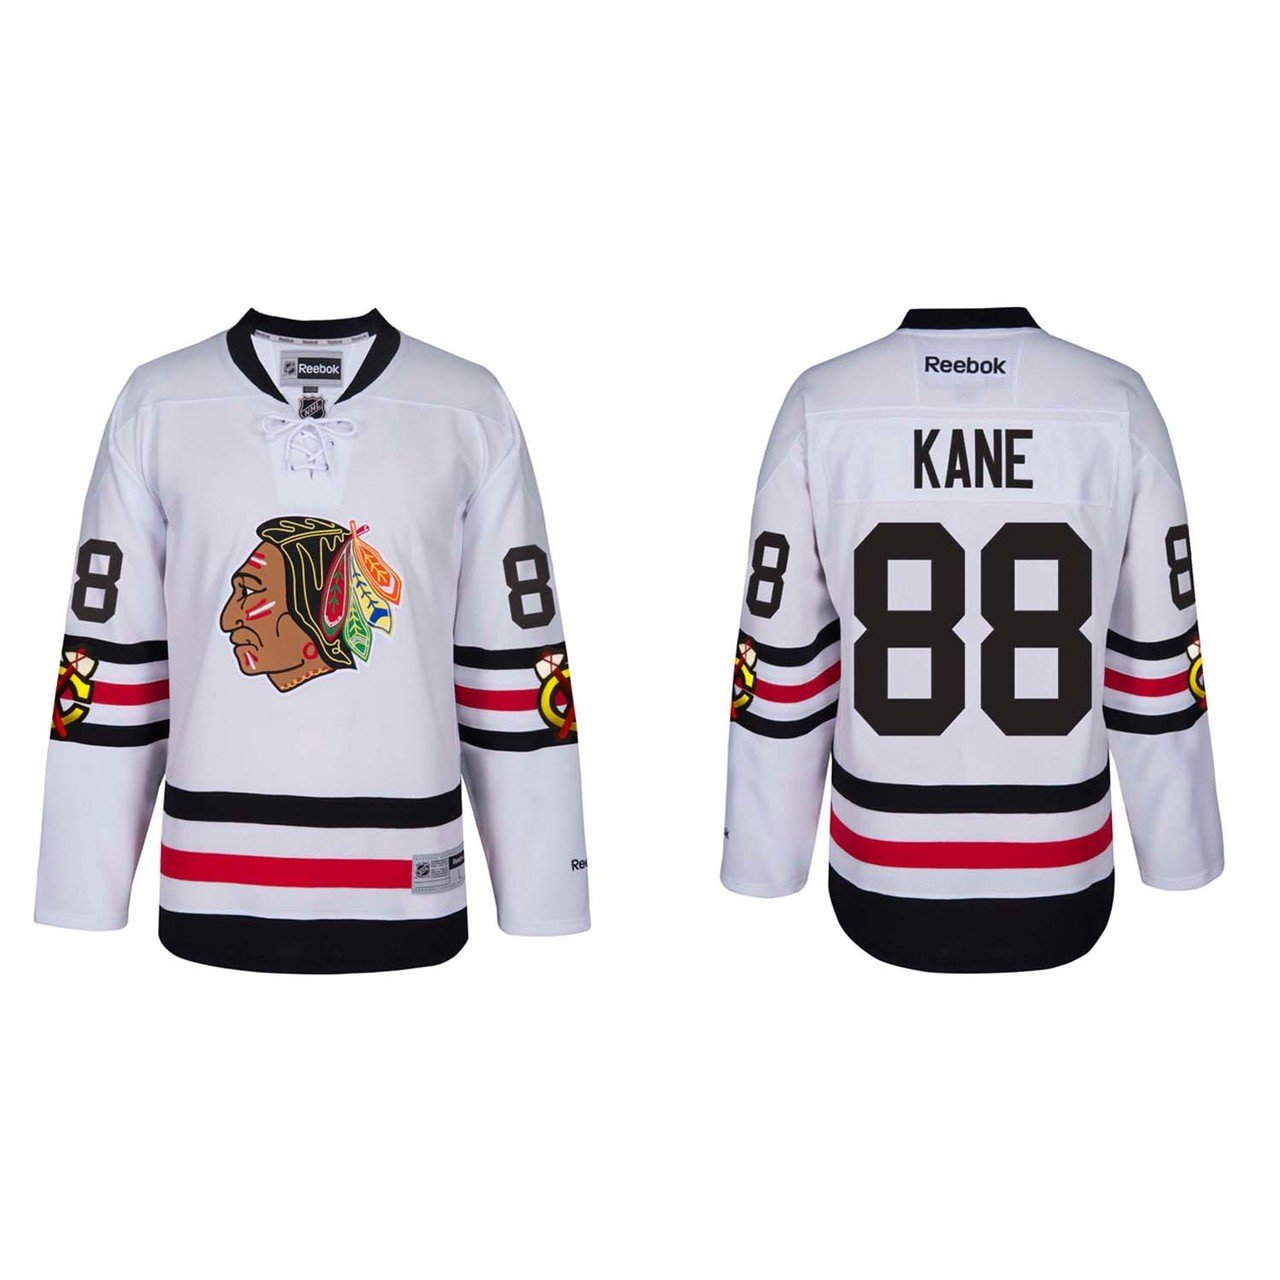 0ddafaab835 Amazon.com : Reebok Chicago Blackhawks Adult Patrick Kane 2017 Winter  Classic Premier Jersey - Team Color #88, : Clothing